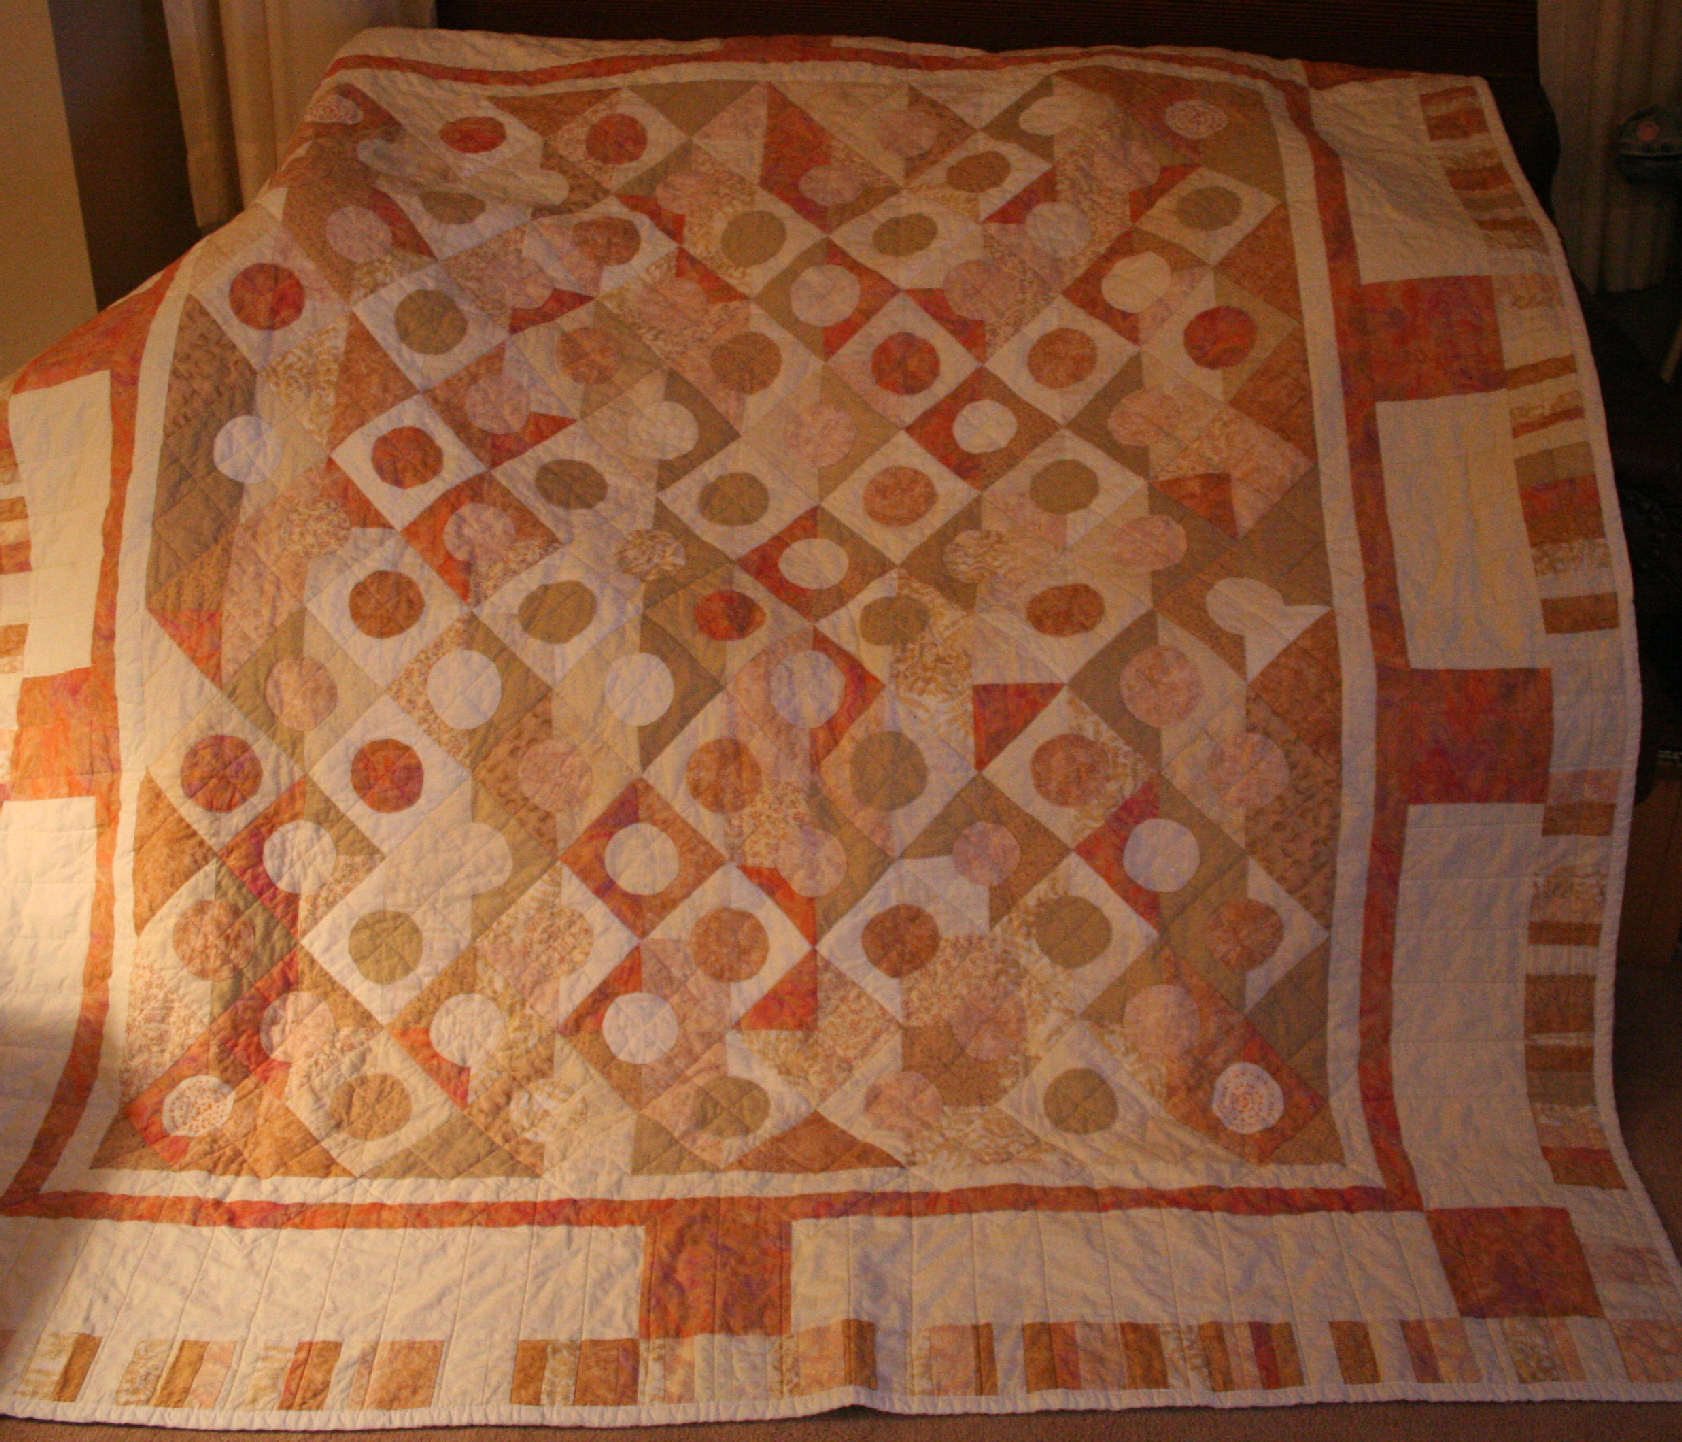 Name:  quilt front.JPG Views: 3808 Size:  301.6 KB